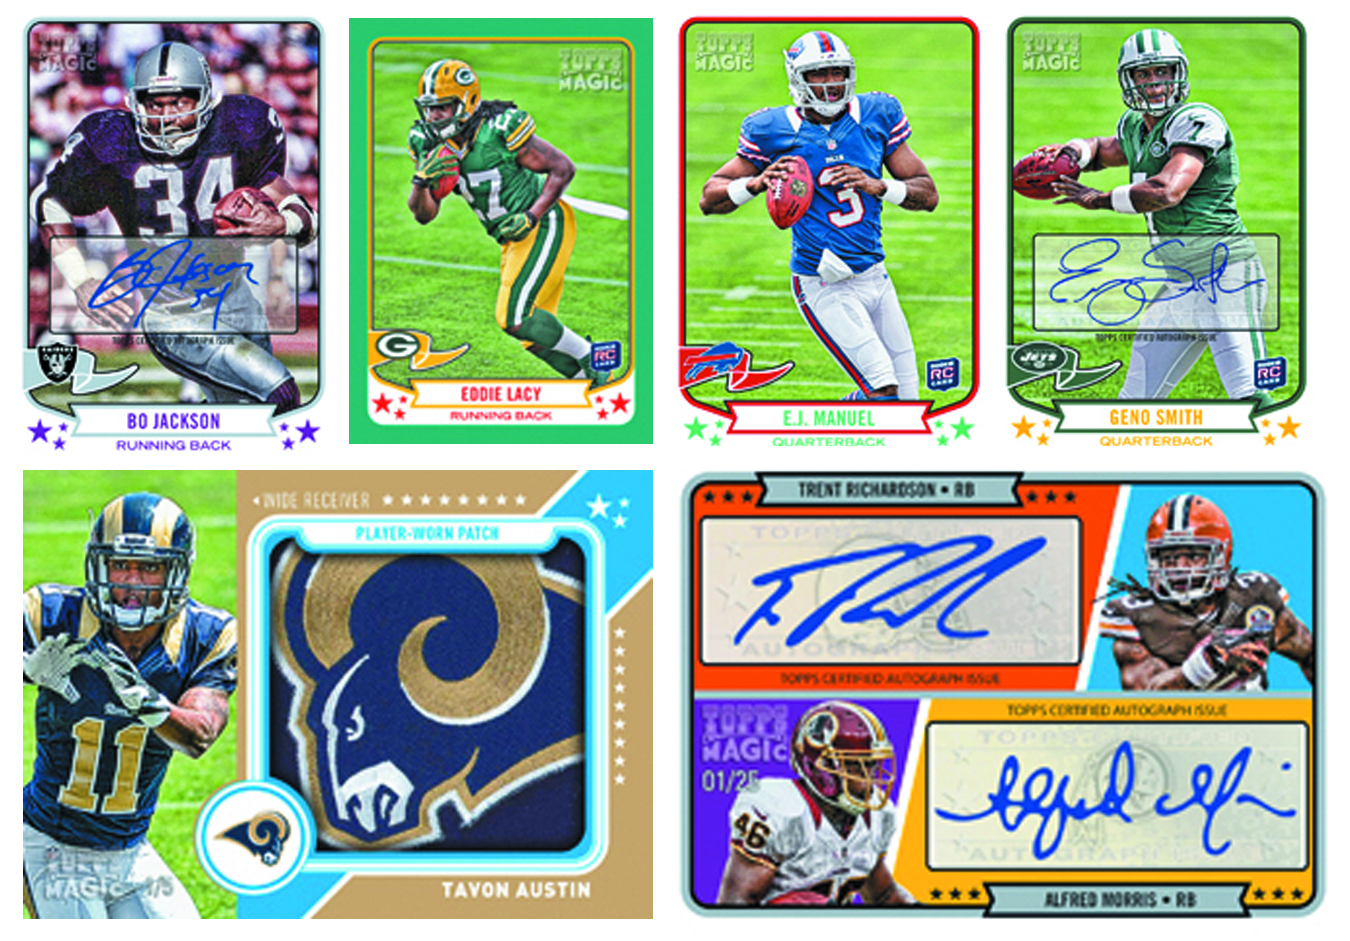 TOPPS 2013 MAGIC FOOTBALL T/C BOX